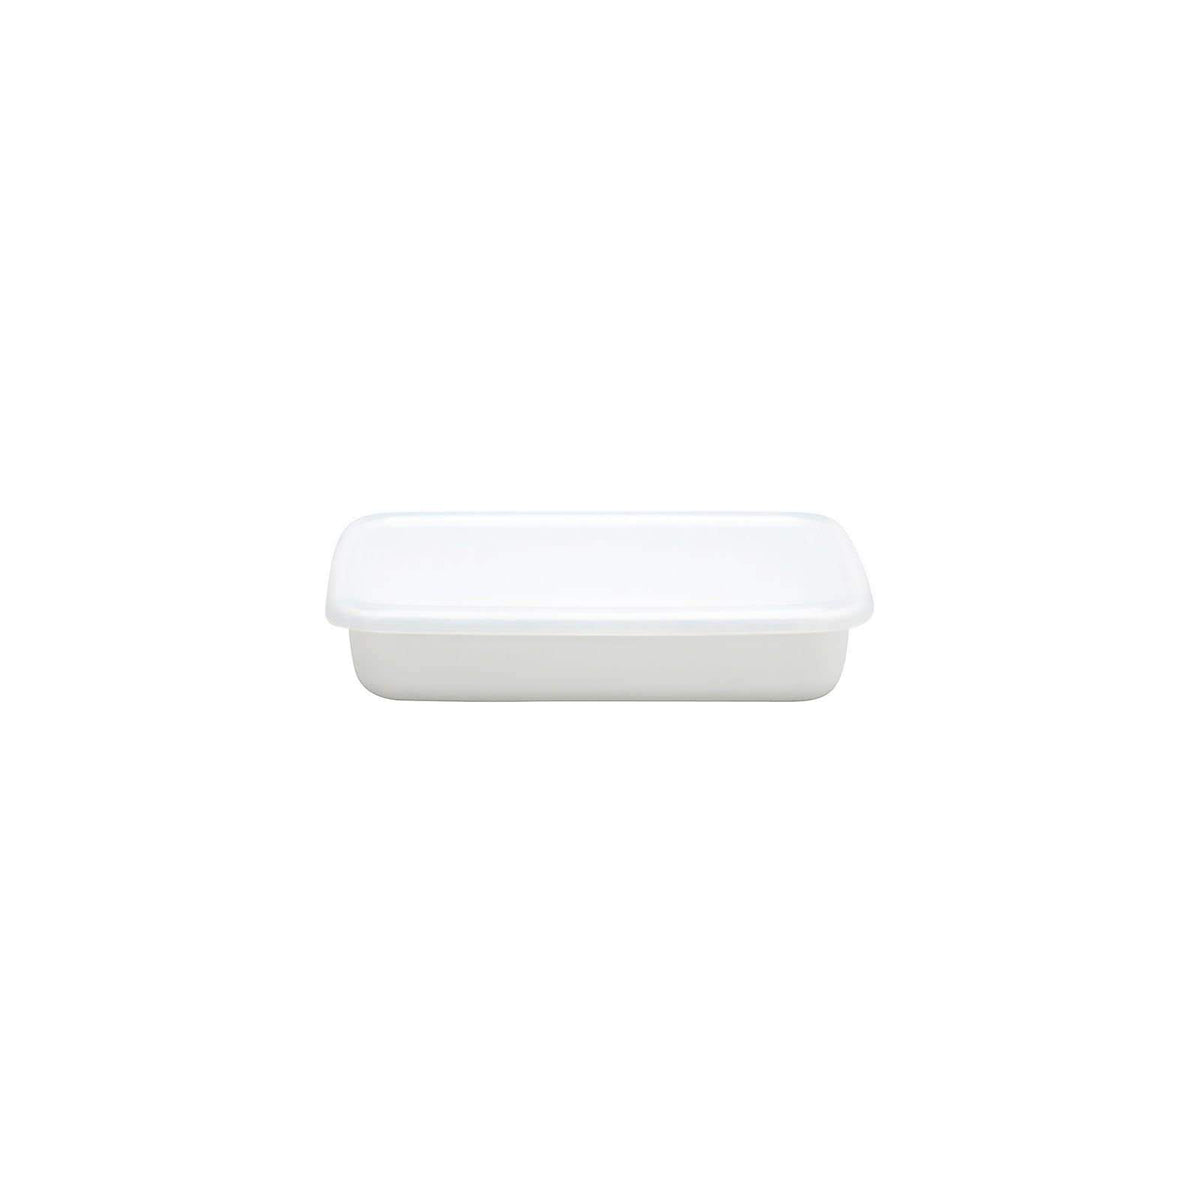 Noda Horo White Series Enamel Rectangle Shallow Food Containers with Lid (3 Sizes) Small Food Containers